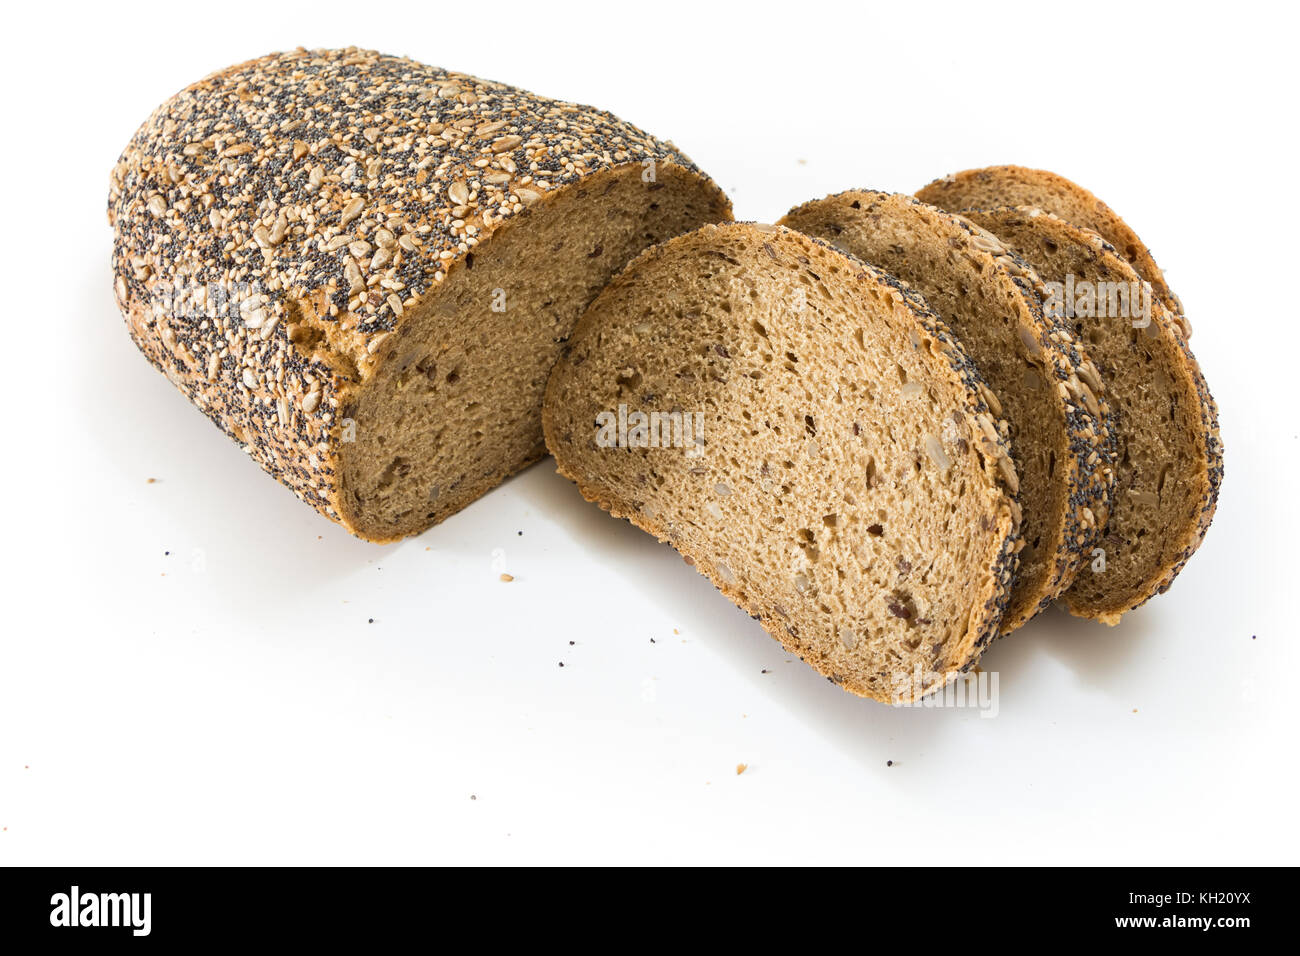 Whole wheat bread with seeds sliced, on white background. Stock Photo